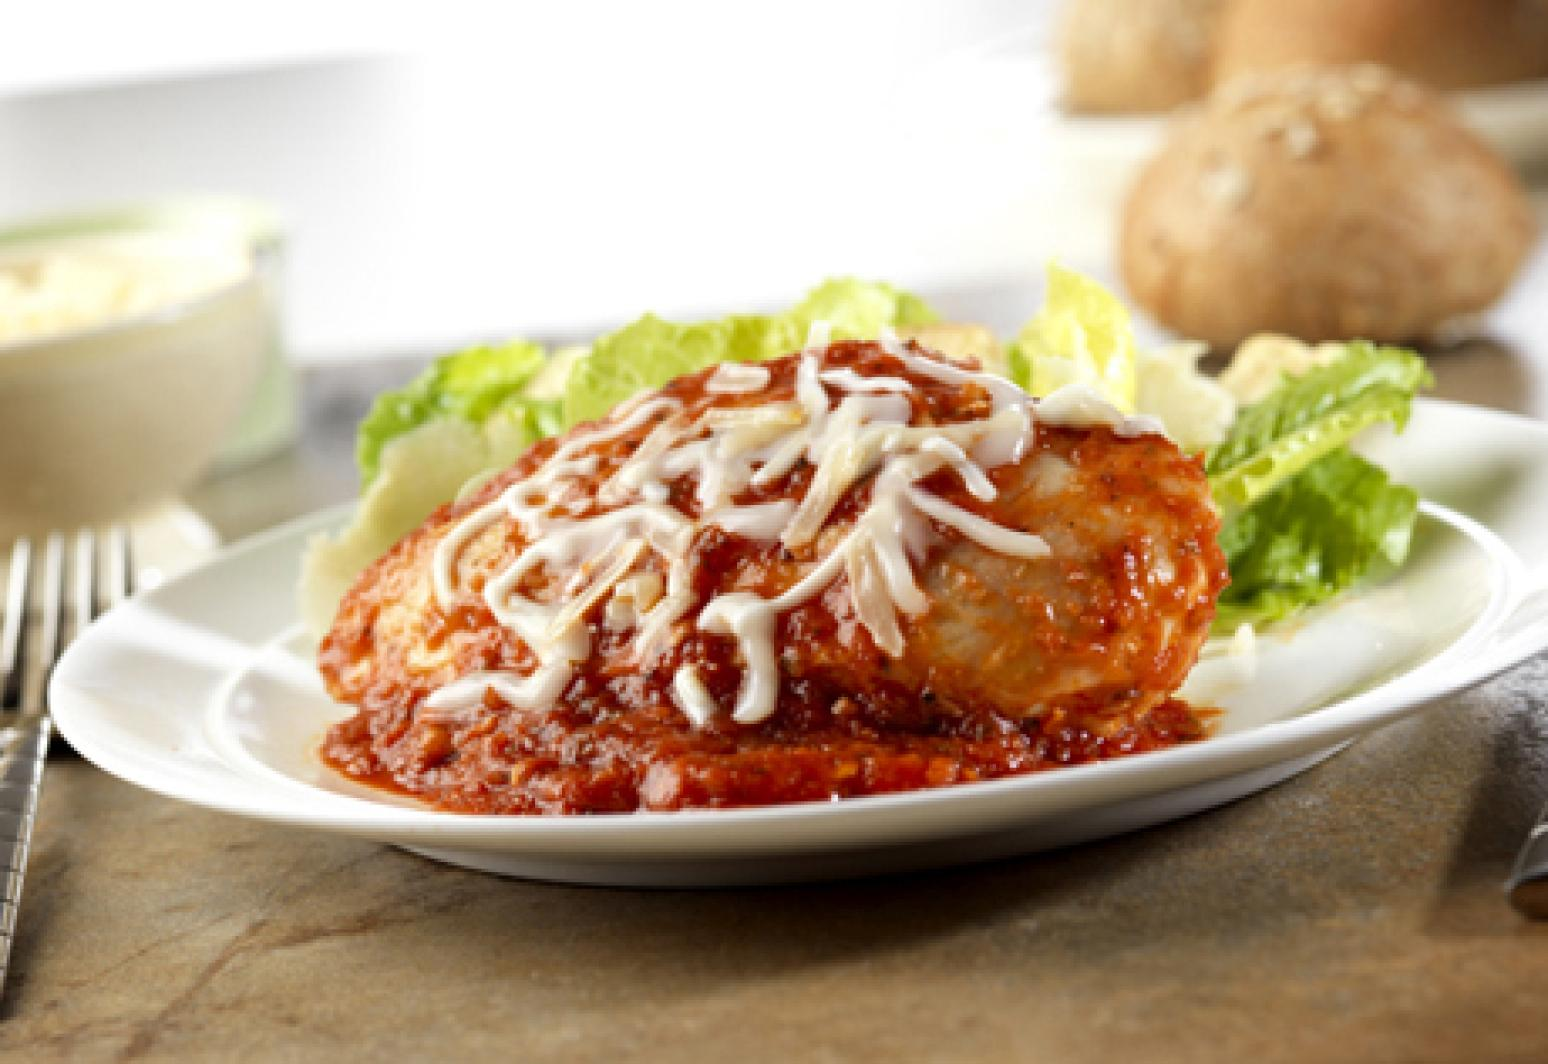 Campbells Kitchen GoodForYou Chicken Parmesan Recipe